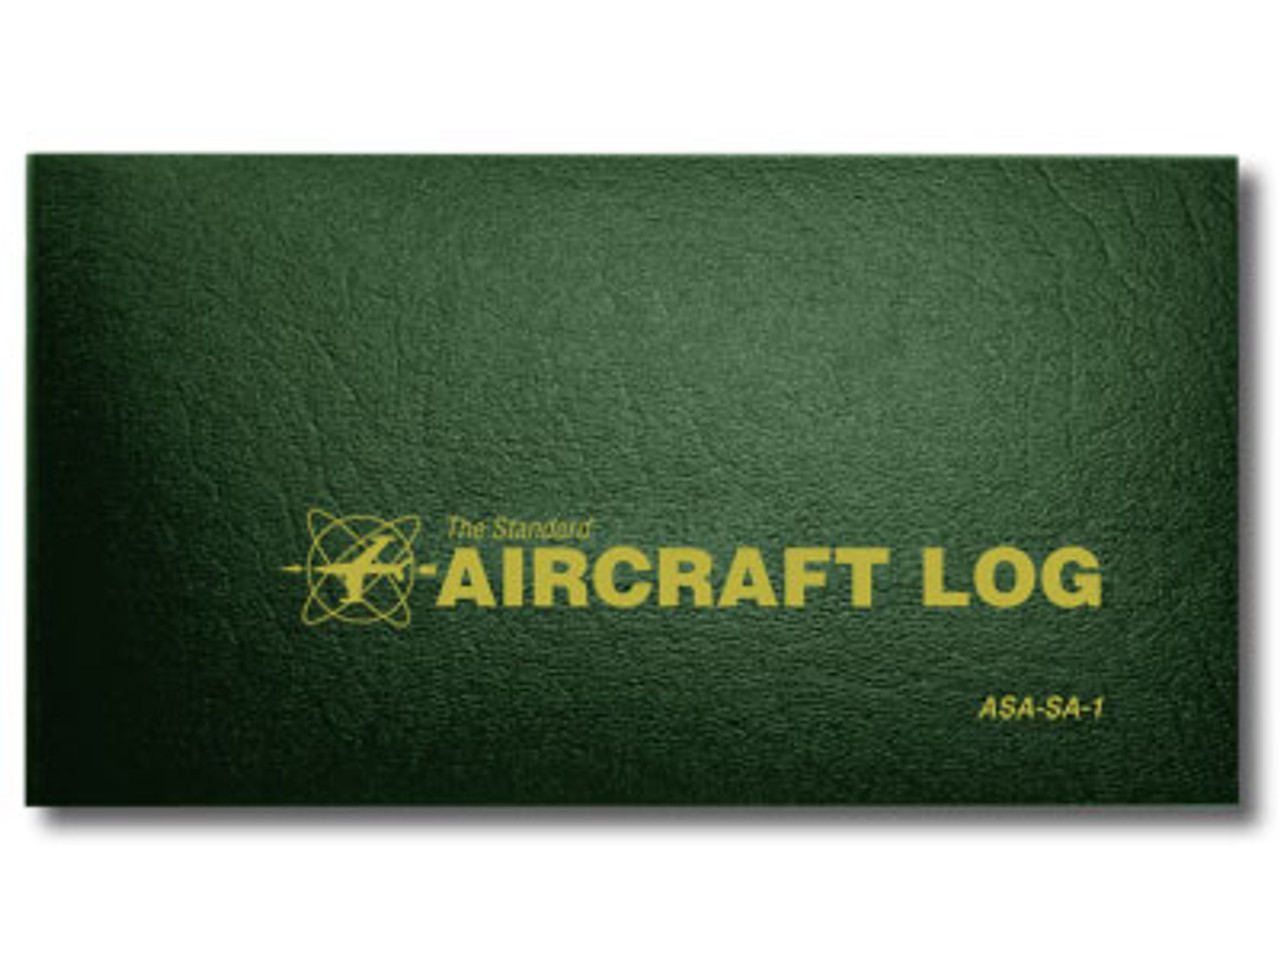 Complete Aircraft Maintenance Logbook Combo (Softcover) - Airframe, Engine, Avionics, Prop